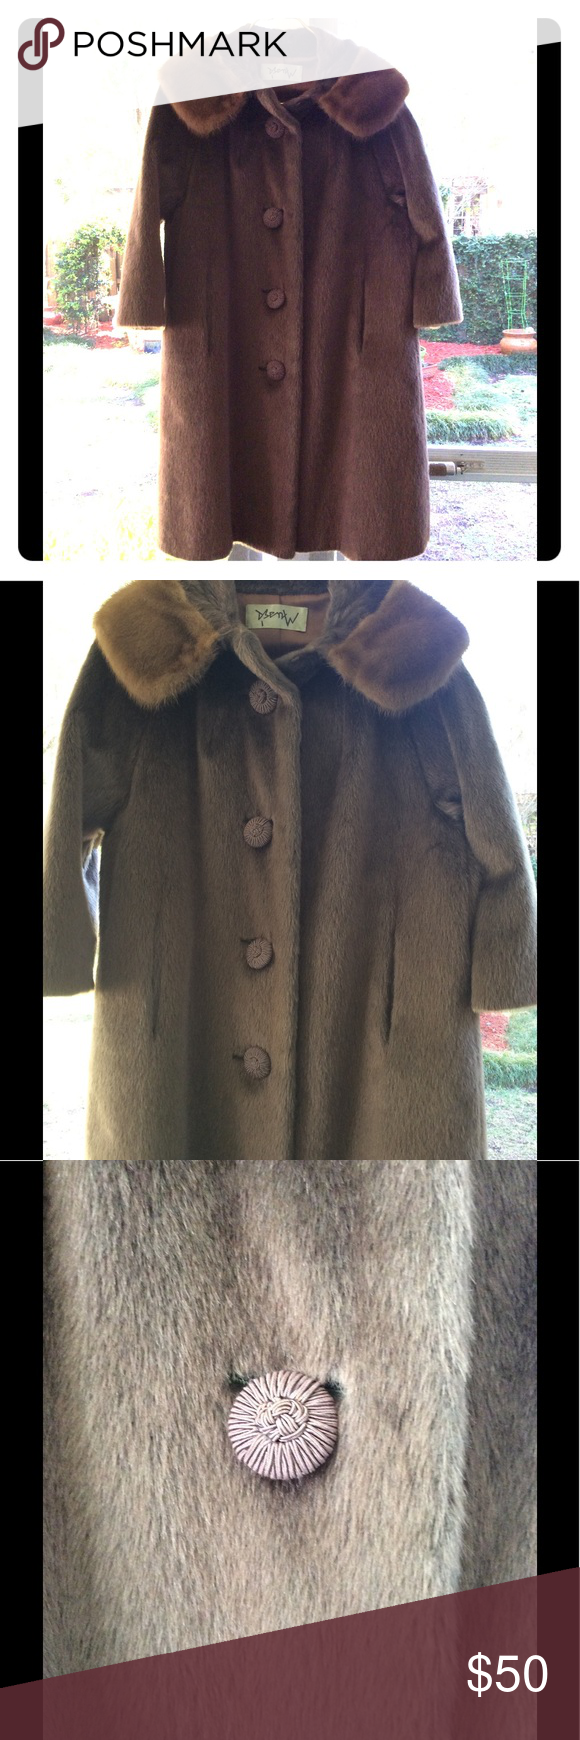 USA made 1950 Fur Coat This listing is for an American Made woman 3/4 sleeve fur coat. The collar is real fur and the body is a mixture of faux and real...typical of the brand. The coat is a true size medium but is an open style so can accommodate a larger figure. The coat is 22 inches in length and is in perfect condition. This coat deserves to be loved and worn! Vintage Jackets & Coats